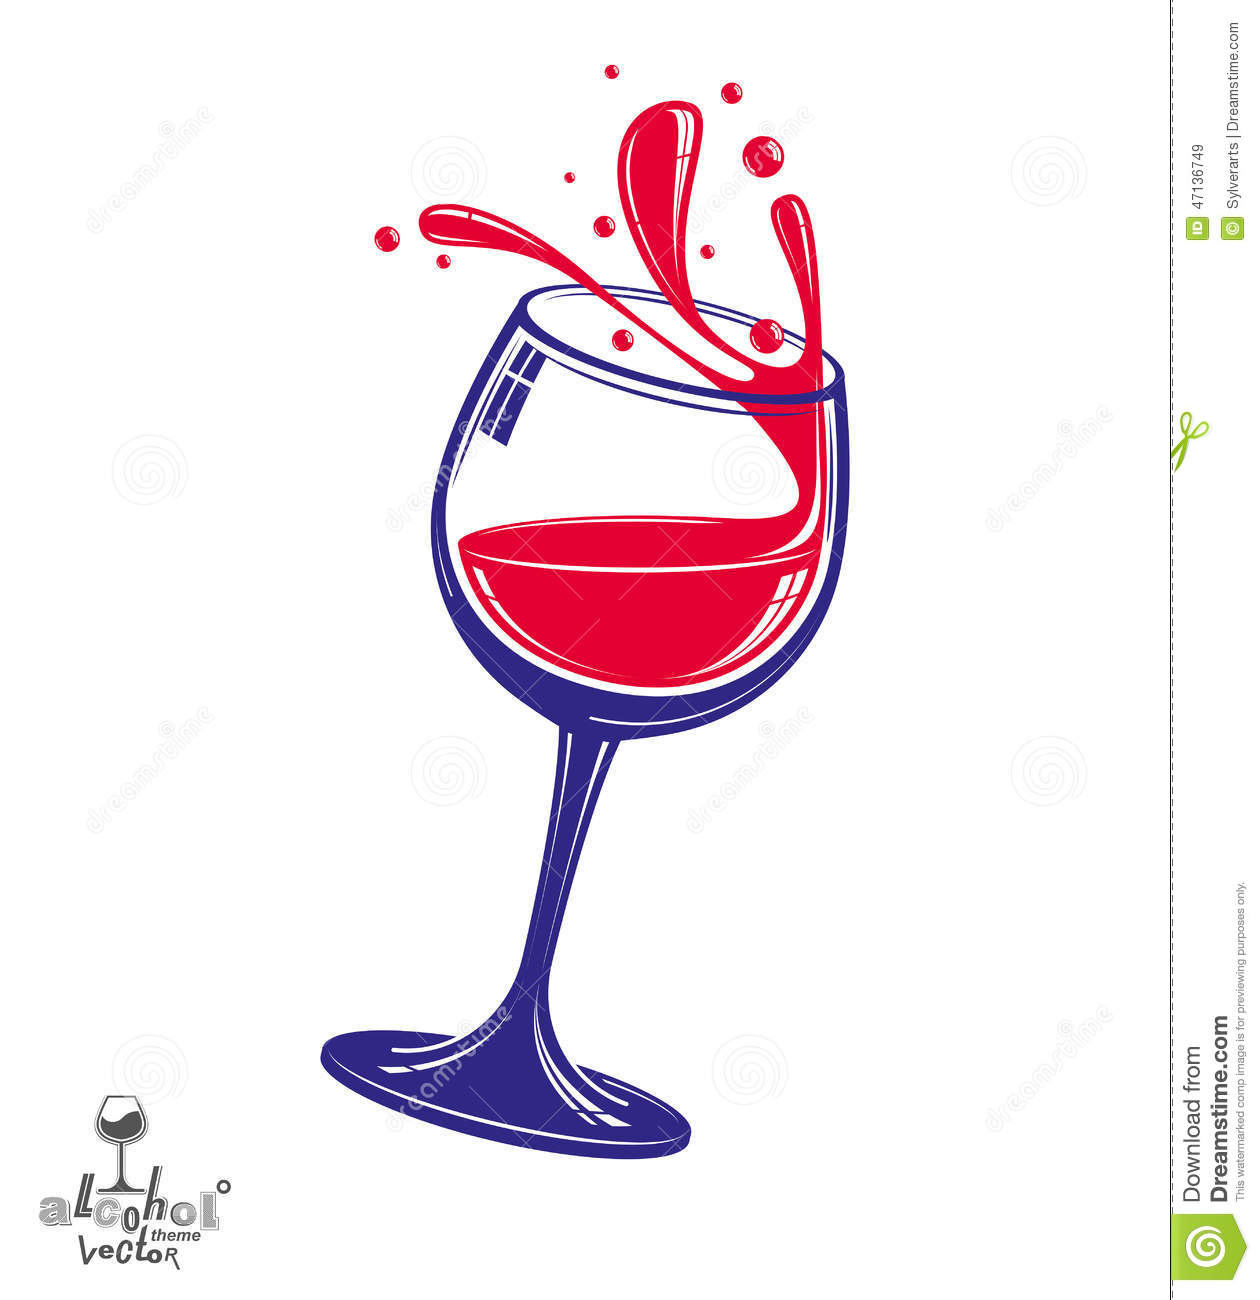 alcohol theme vector art illustration 3d realistic wine goblet stock vector image 47136749 couch potato clipart free Oversized Couch Potato